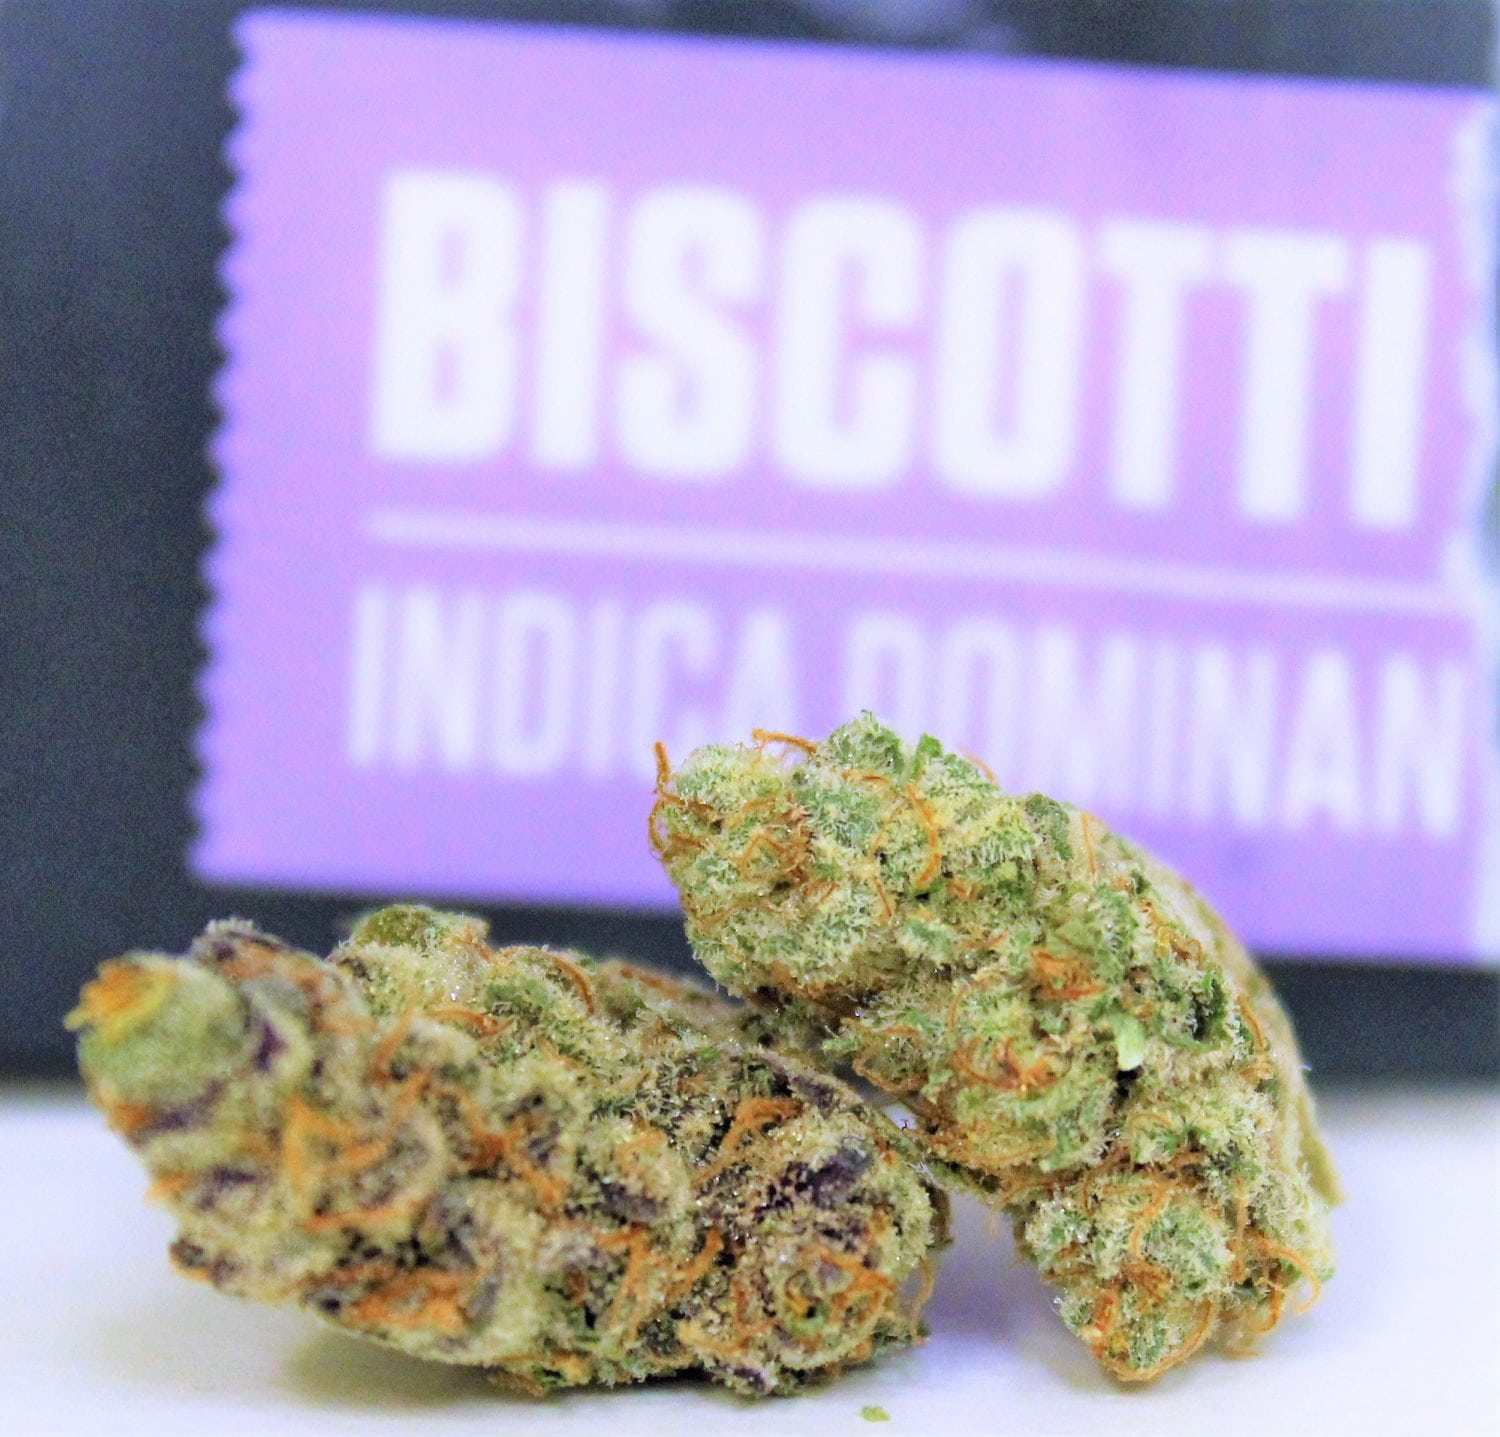 Why Is The Biscotti Strain So Dank The Genetics Are Very Powerful